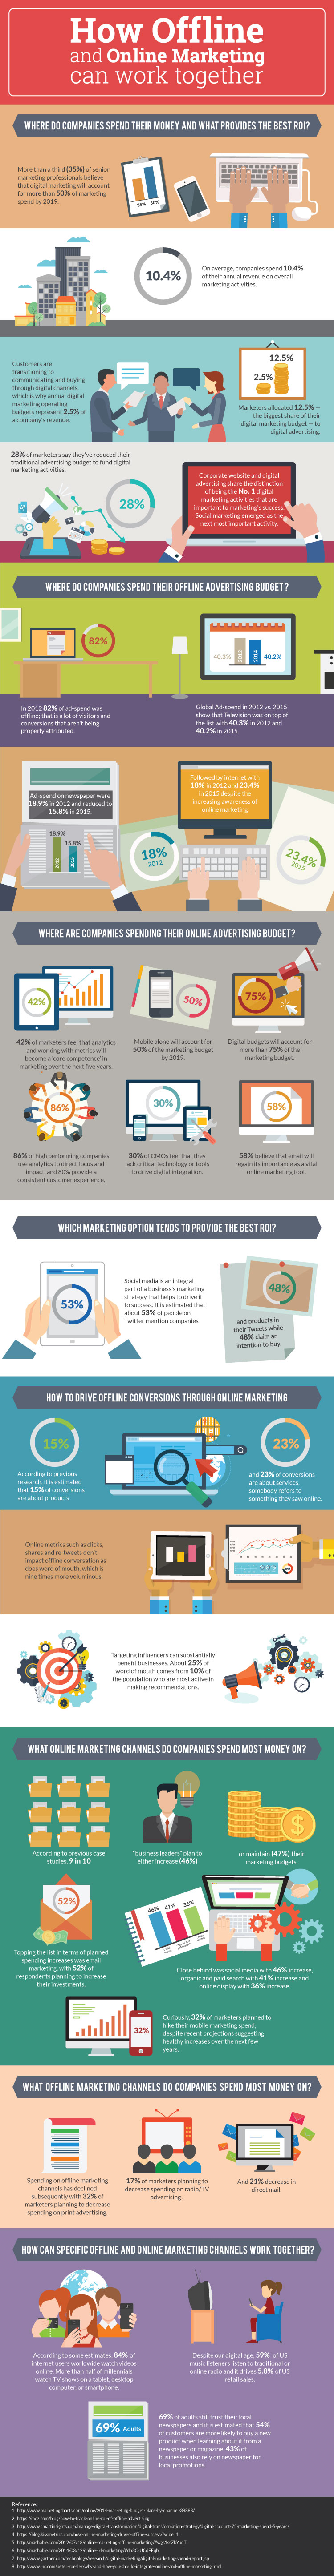 How Online & Offline Marketing Can Work Together [Infographic]